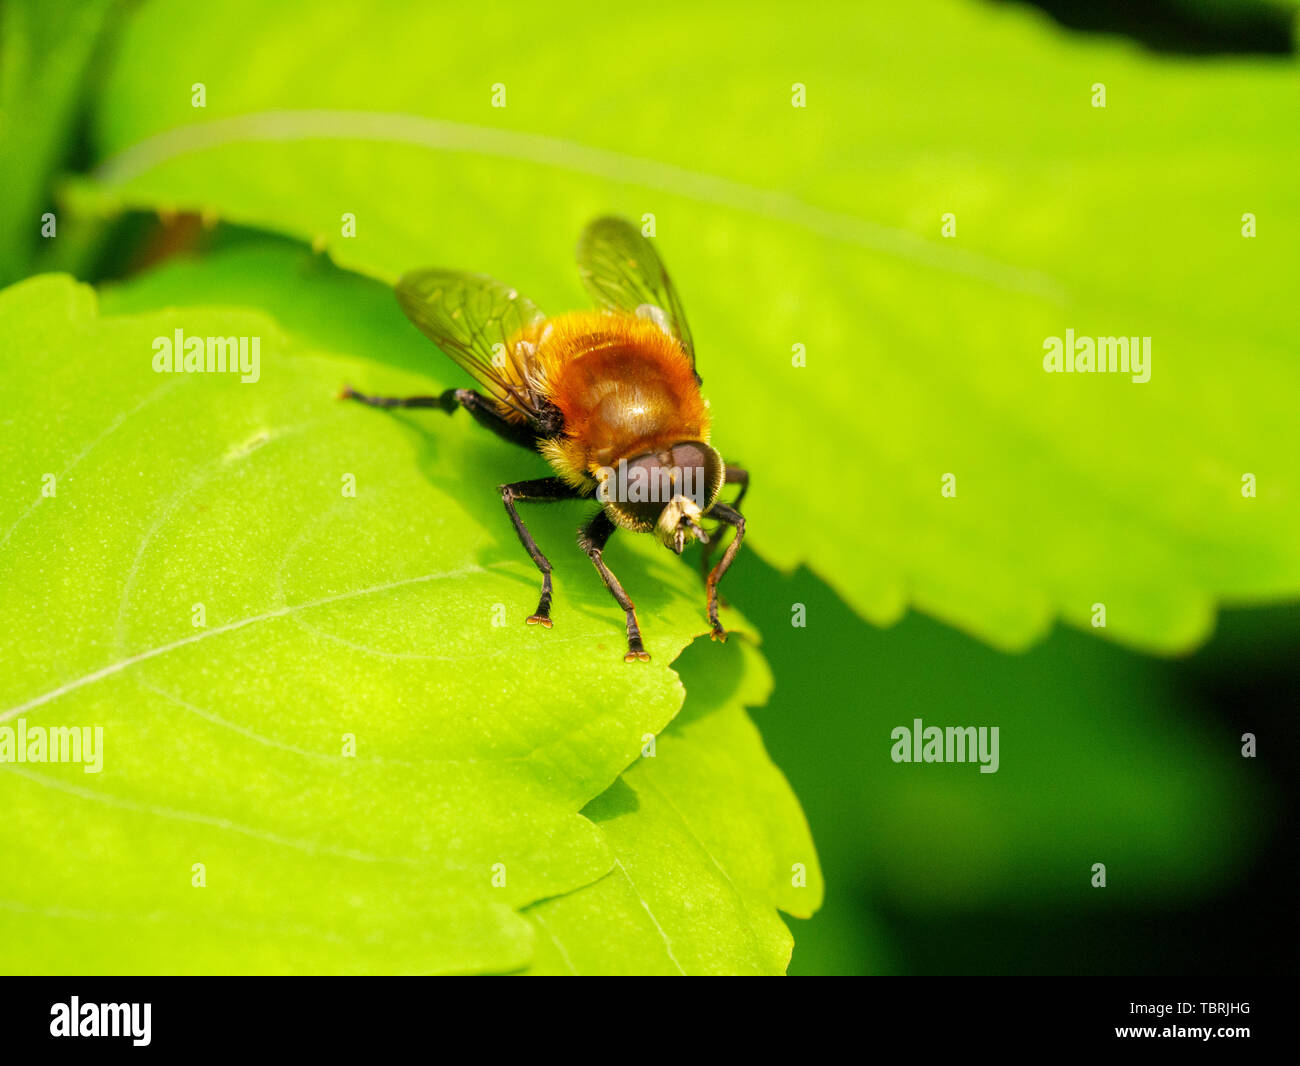 Narcissus bulb fly (Merodon equestris). Stock Photo